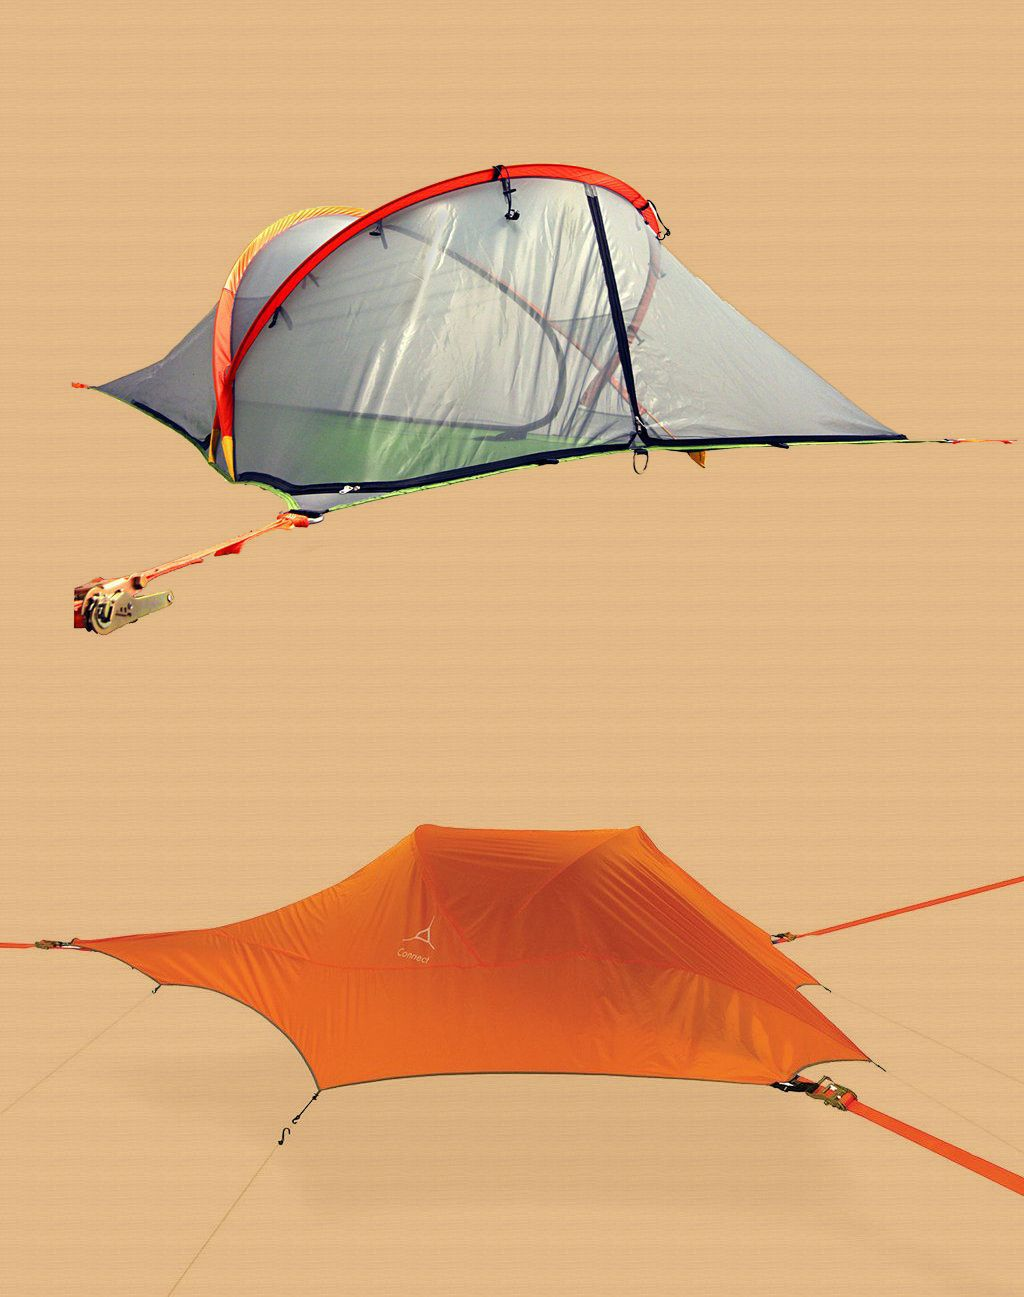 $450 Tentsile Connect Suspended Tree Tent Orange  sc 1 st  Pinterest & Tents 179010: New With Tags! $450 Tentsile Connect Suspended Tree ...